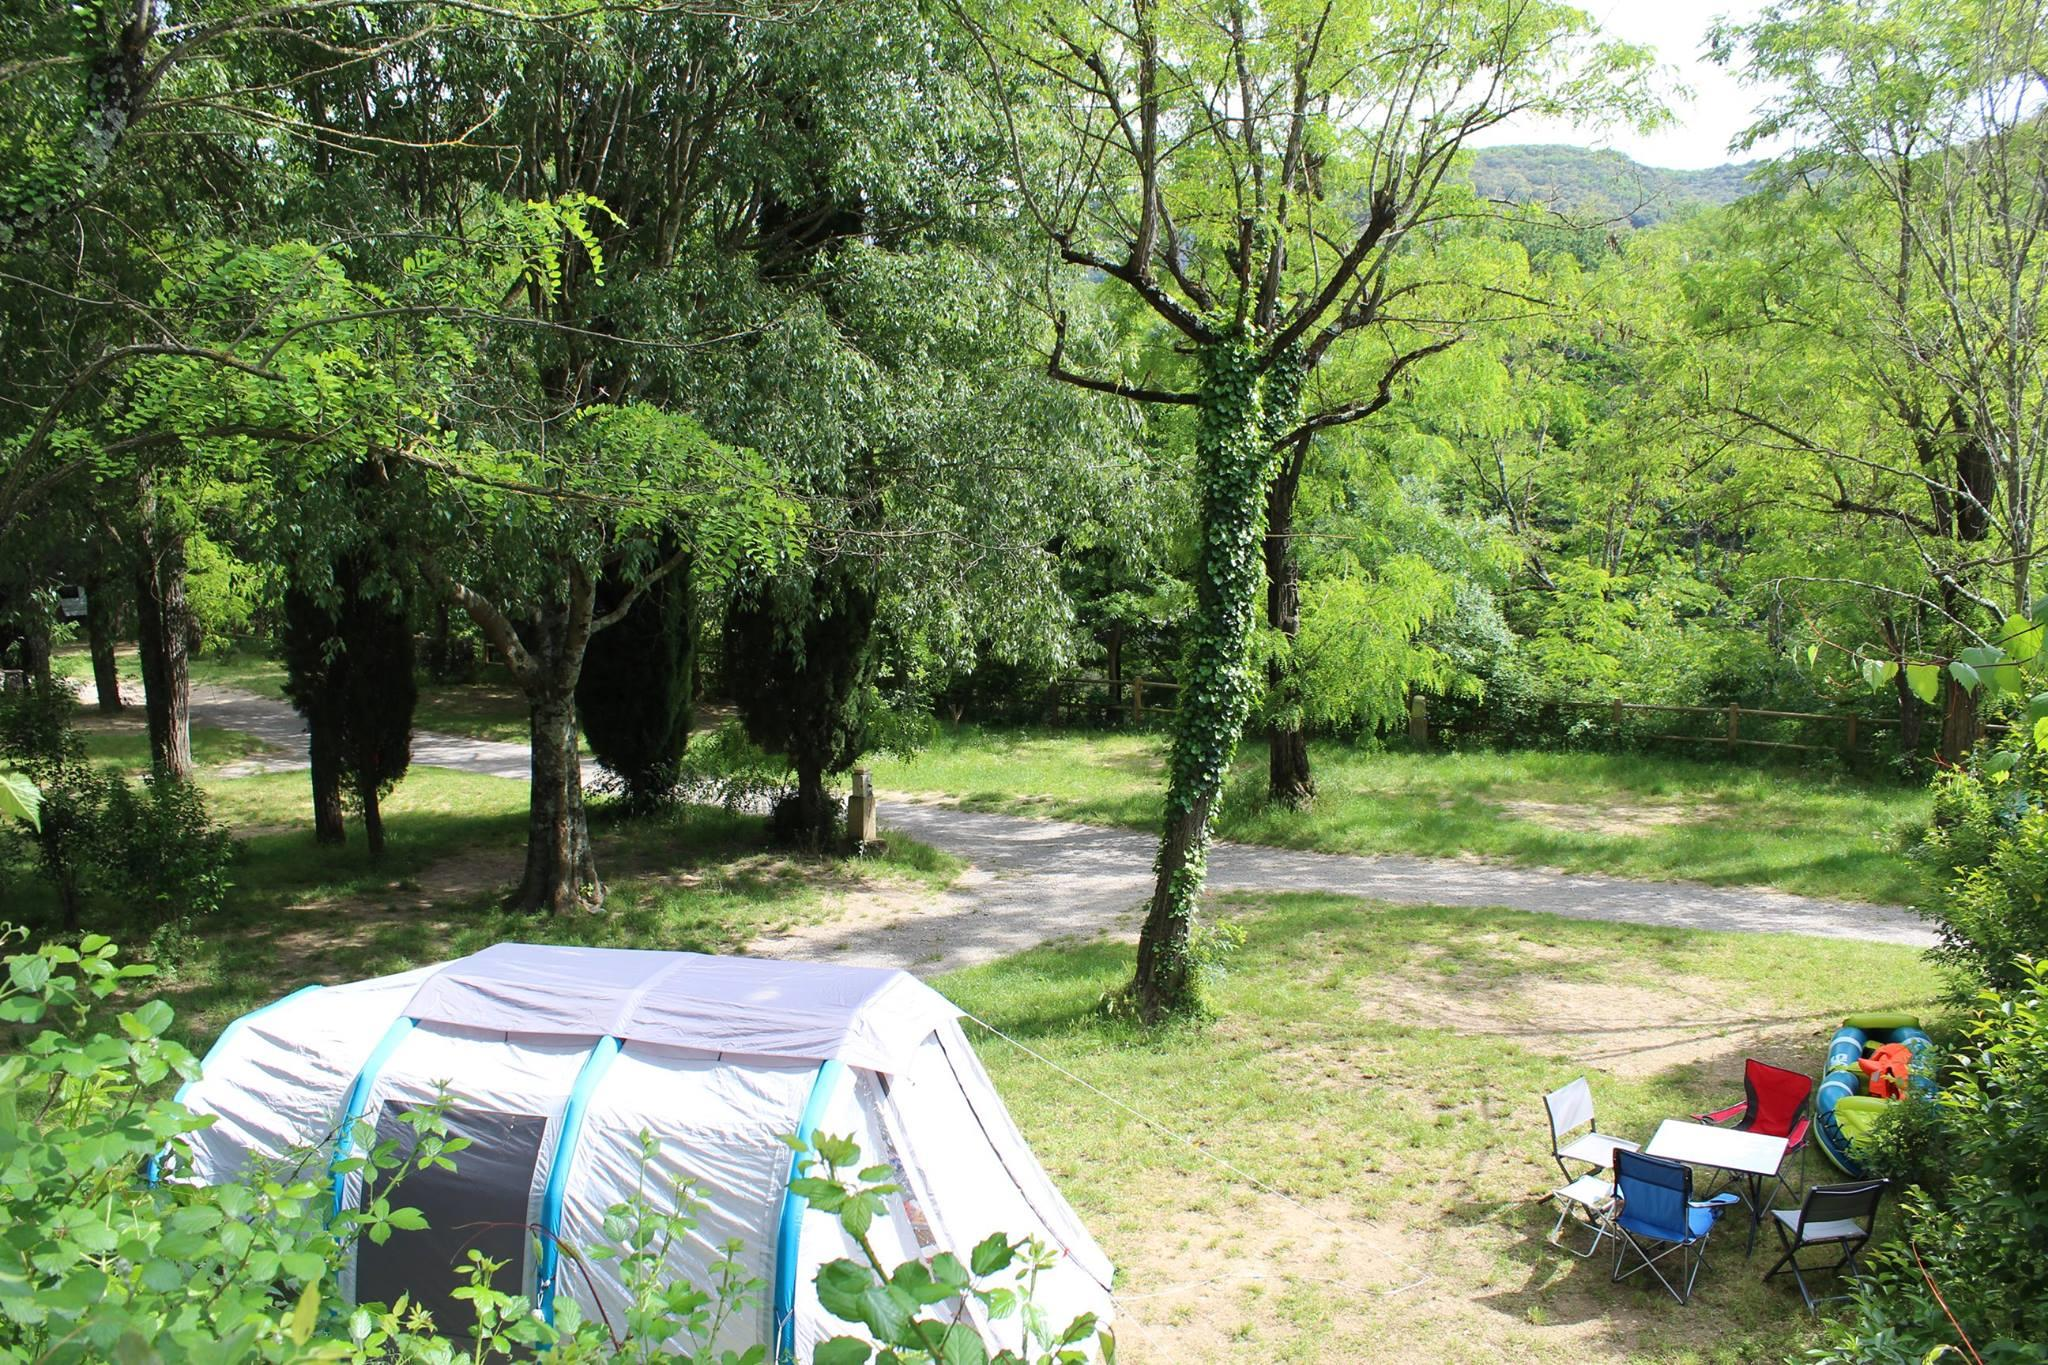 Etablissement CAMPING DES TUNNELS - VALLON PONT D'ARC